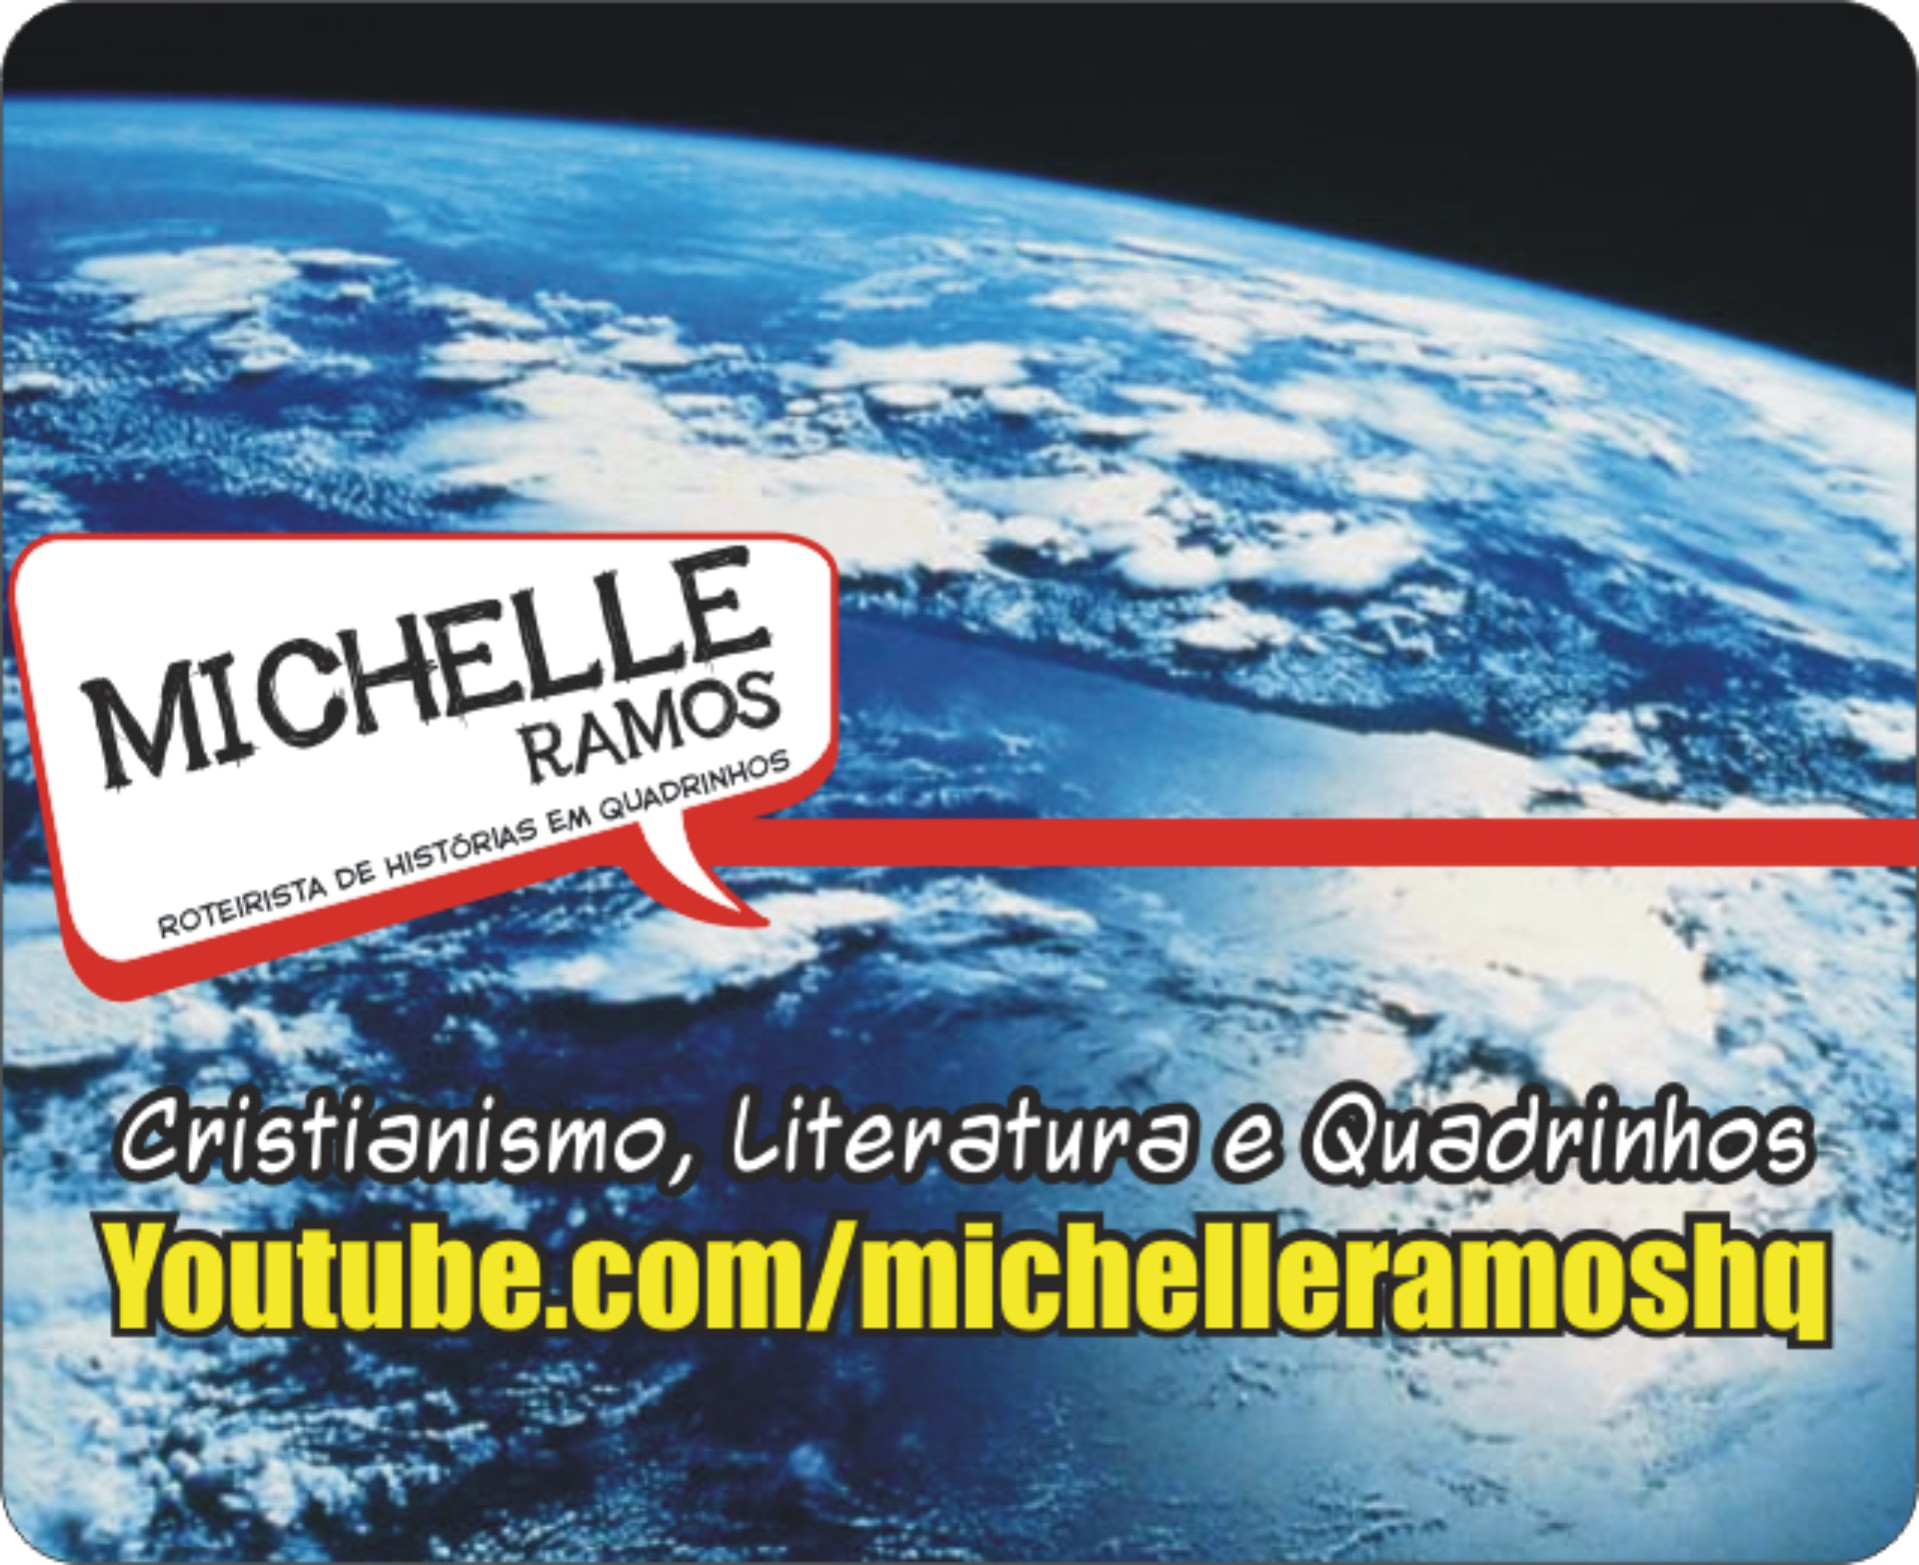 Canal de Michelle Ramos no You Tube